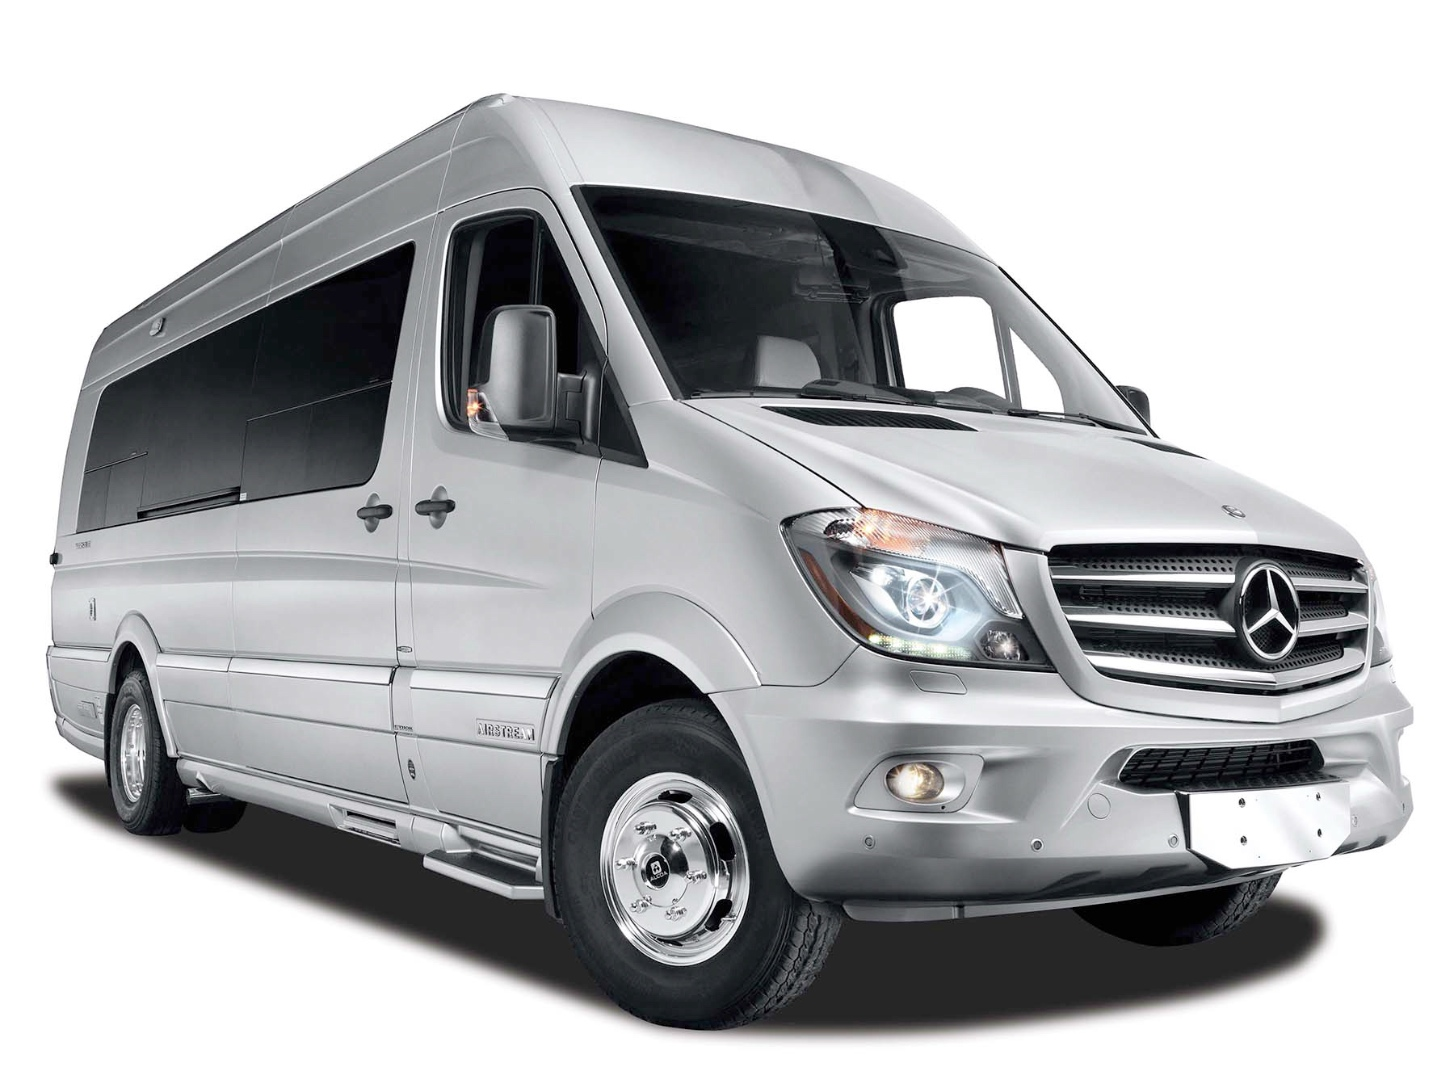 New airstream autobahn is a mercedes benz sprinter luxury for Mercedes benz luxury rv